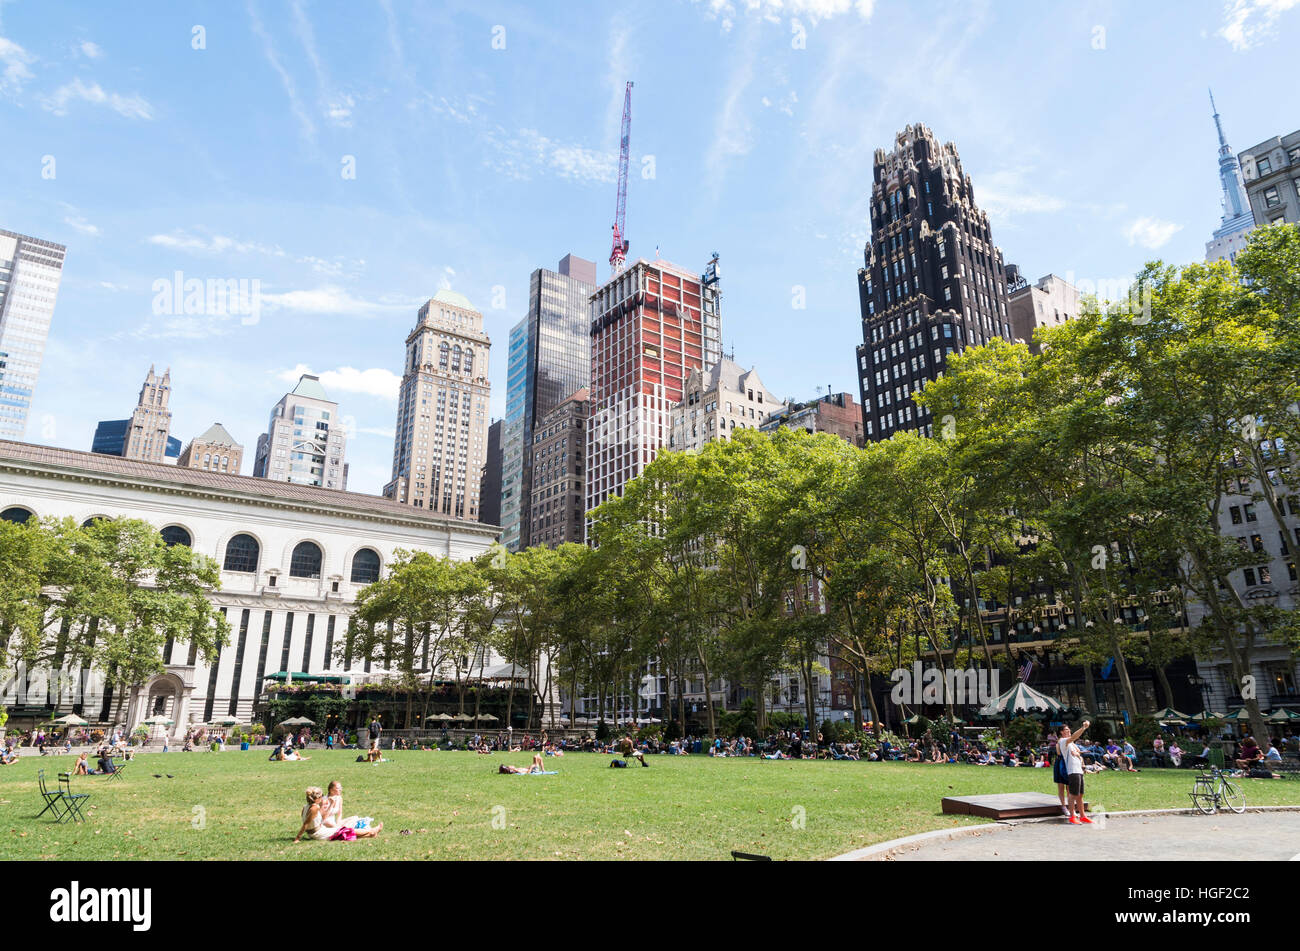 View across the Great Lawn in Bryant Park, New York, in Summer with the Bryant Park Hotel in the background - Stock Image